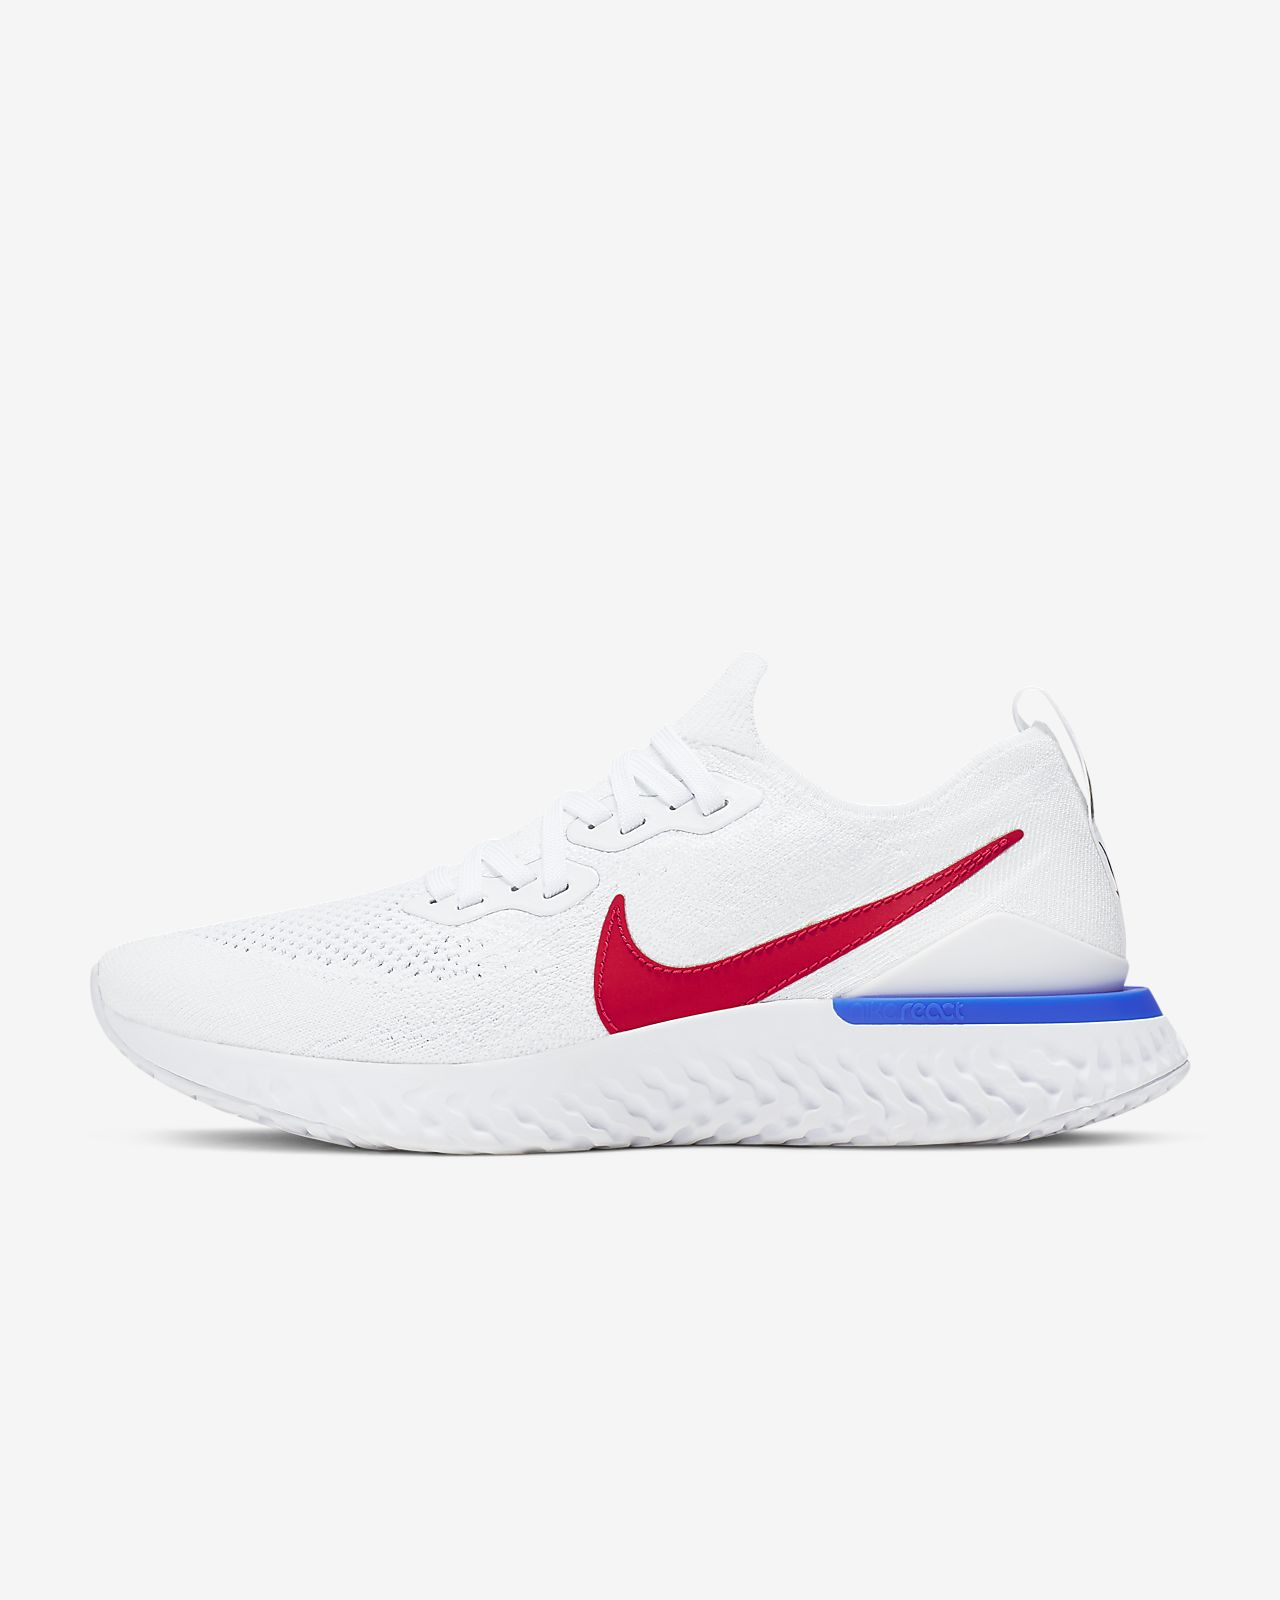 Chaussure de running Nike Epic React Flyknit 2 BRS pour Homme